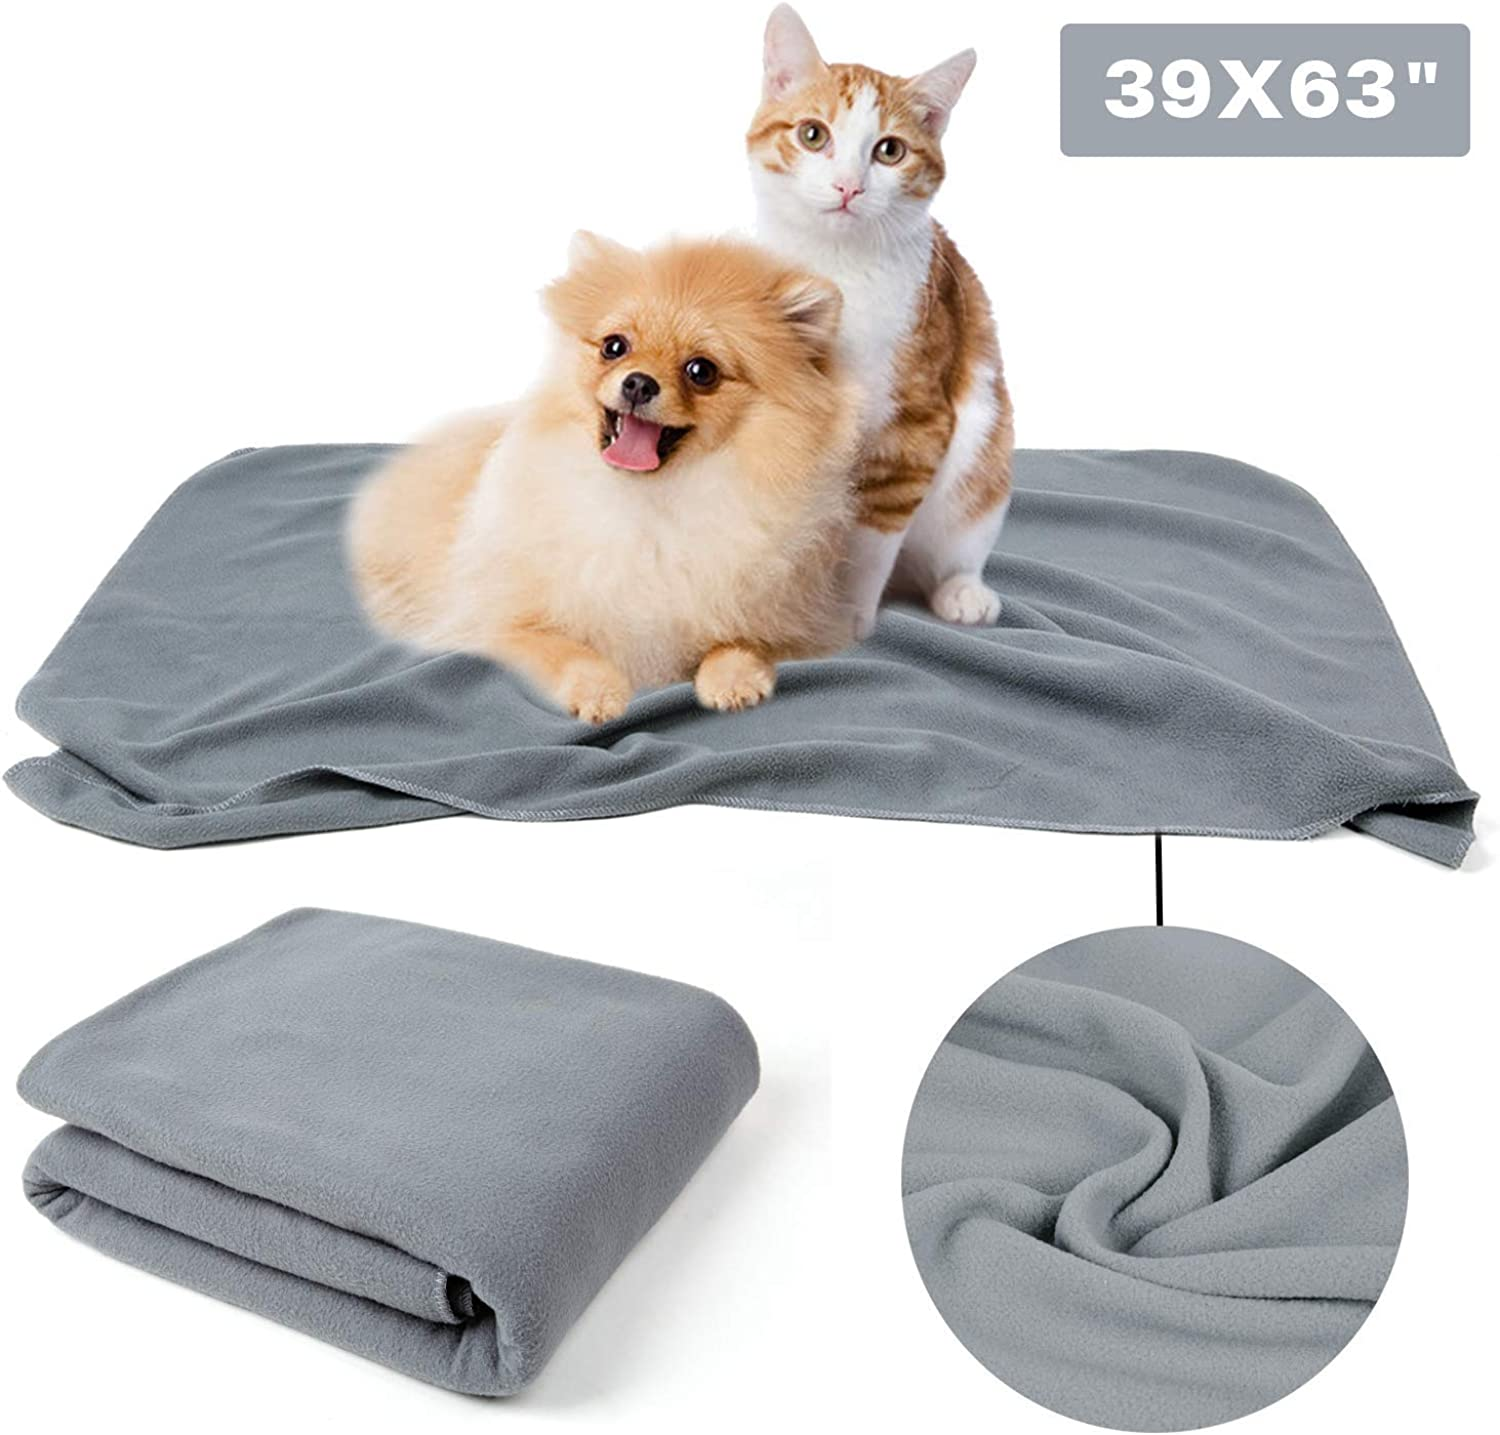 Puppy Dog Cat Fleece Warm Blanket, Pet Soft Sleep Bed Cover for Kitten Small Animals, Grey